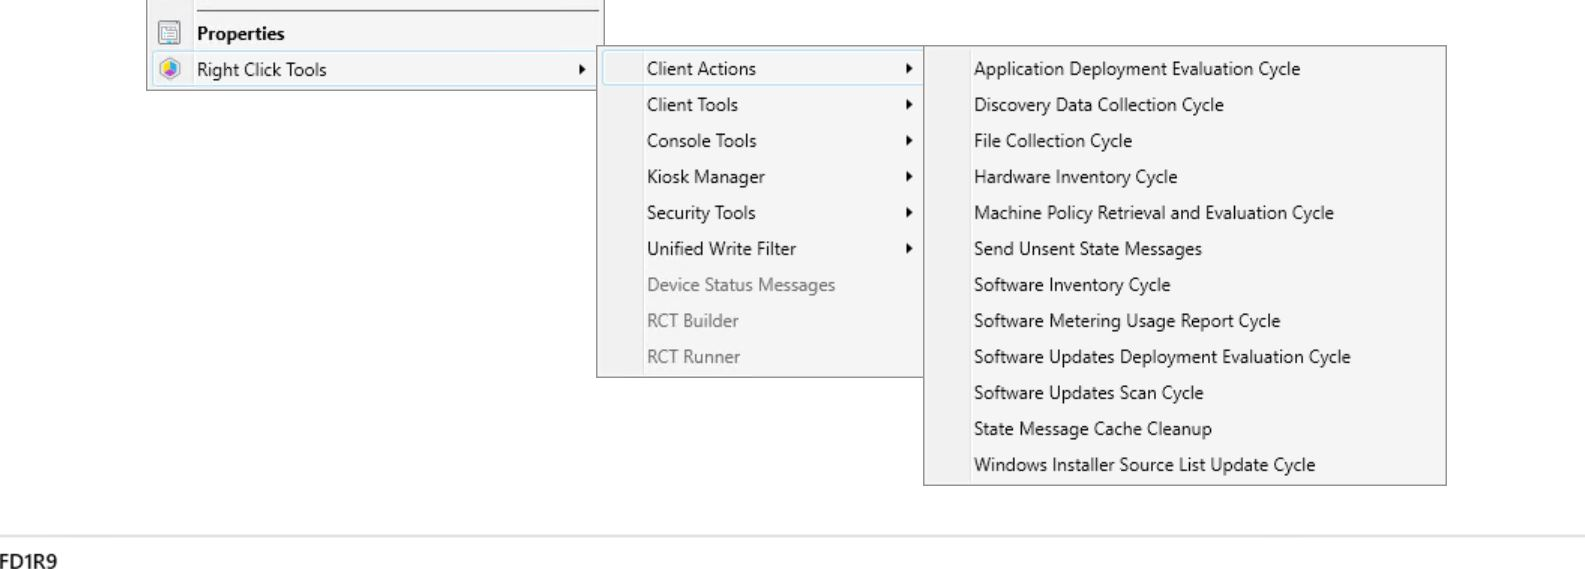 Right Click Tools for MECM (SCCM)